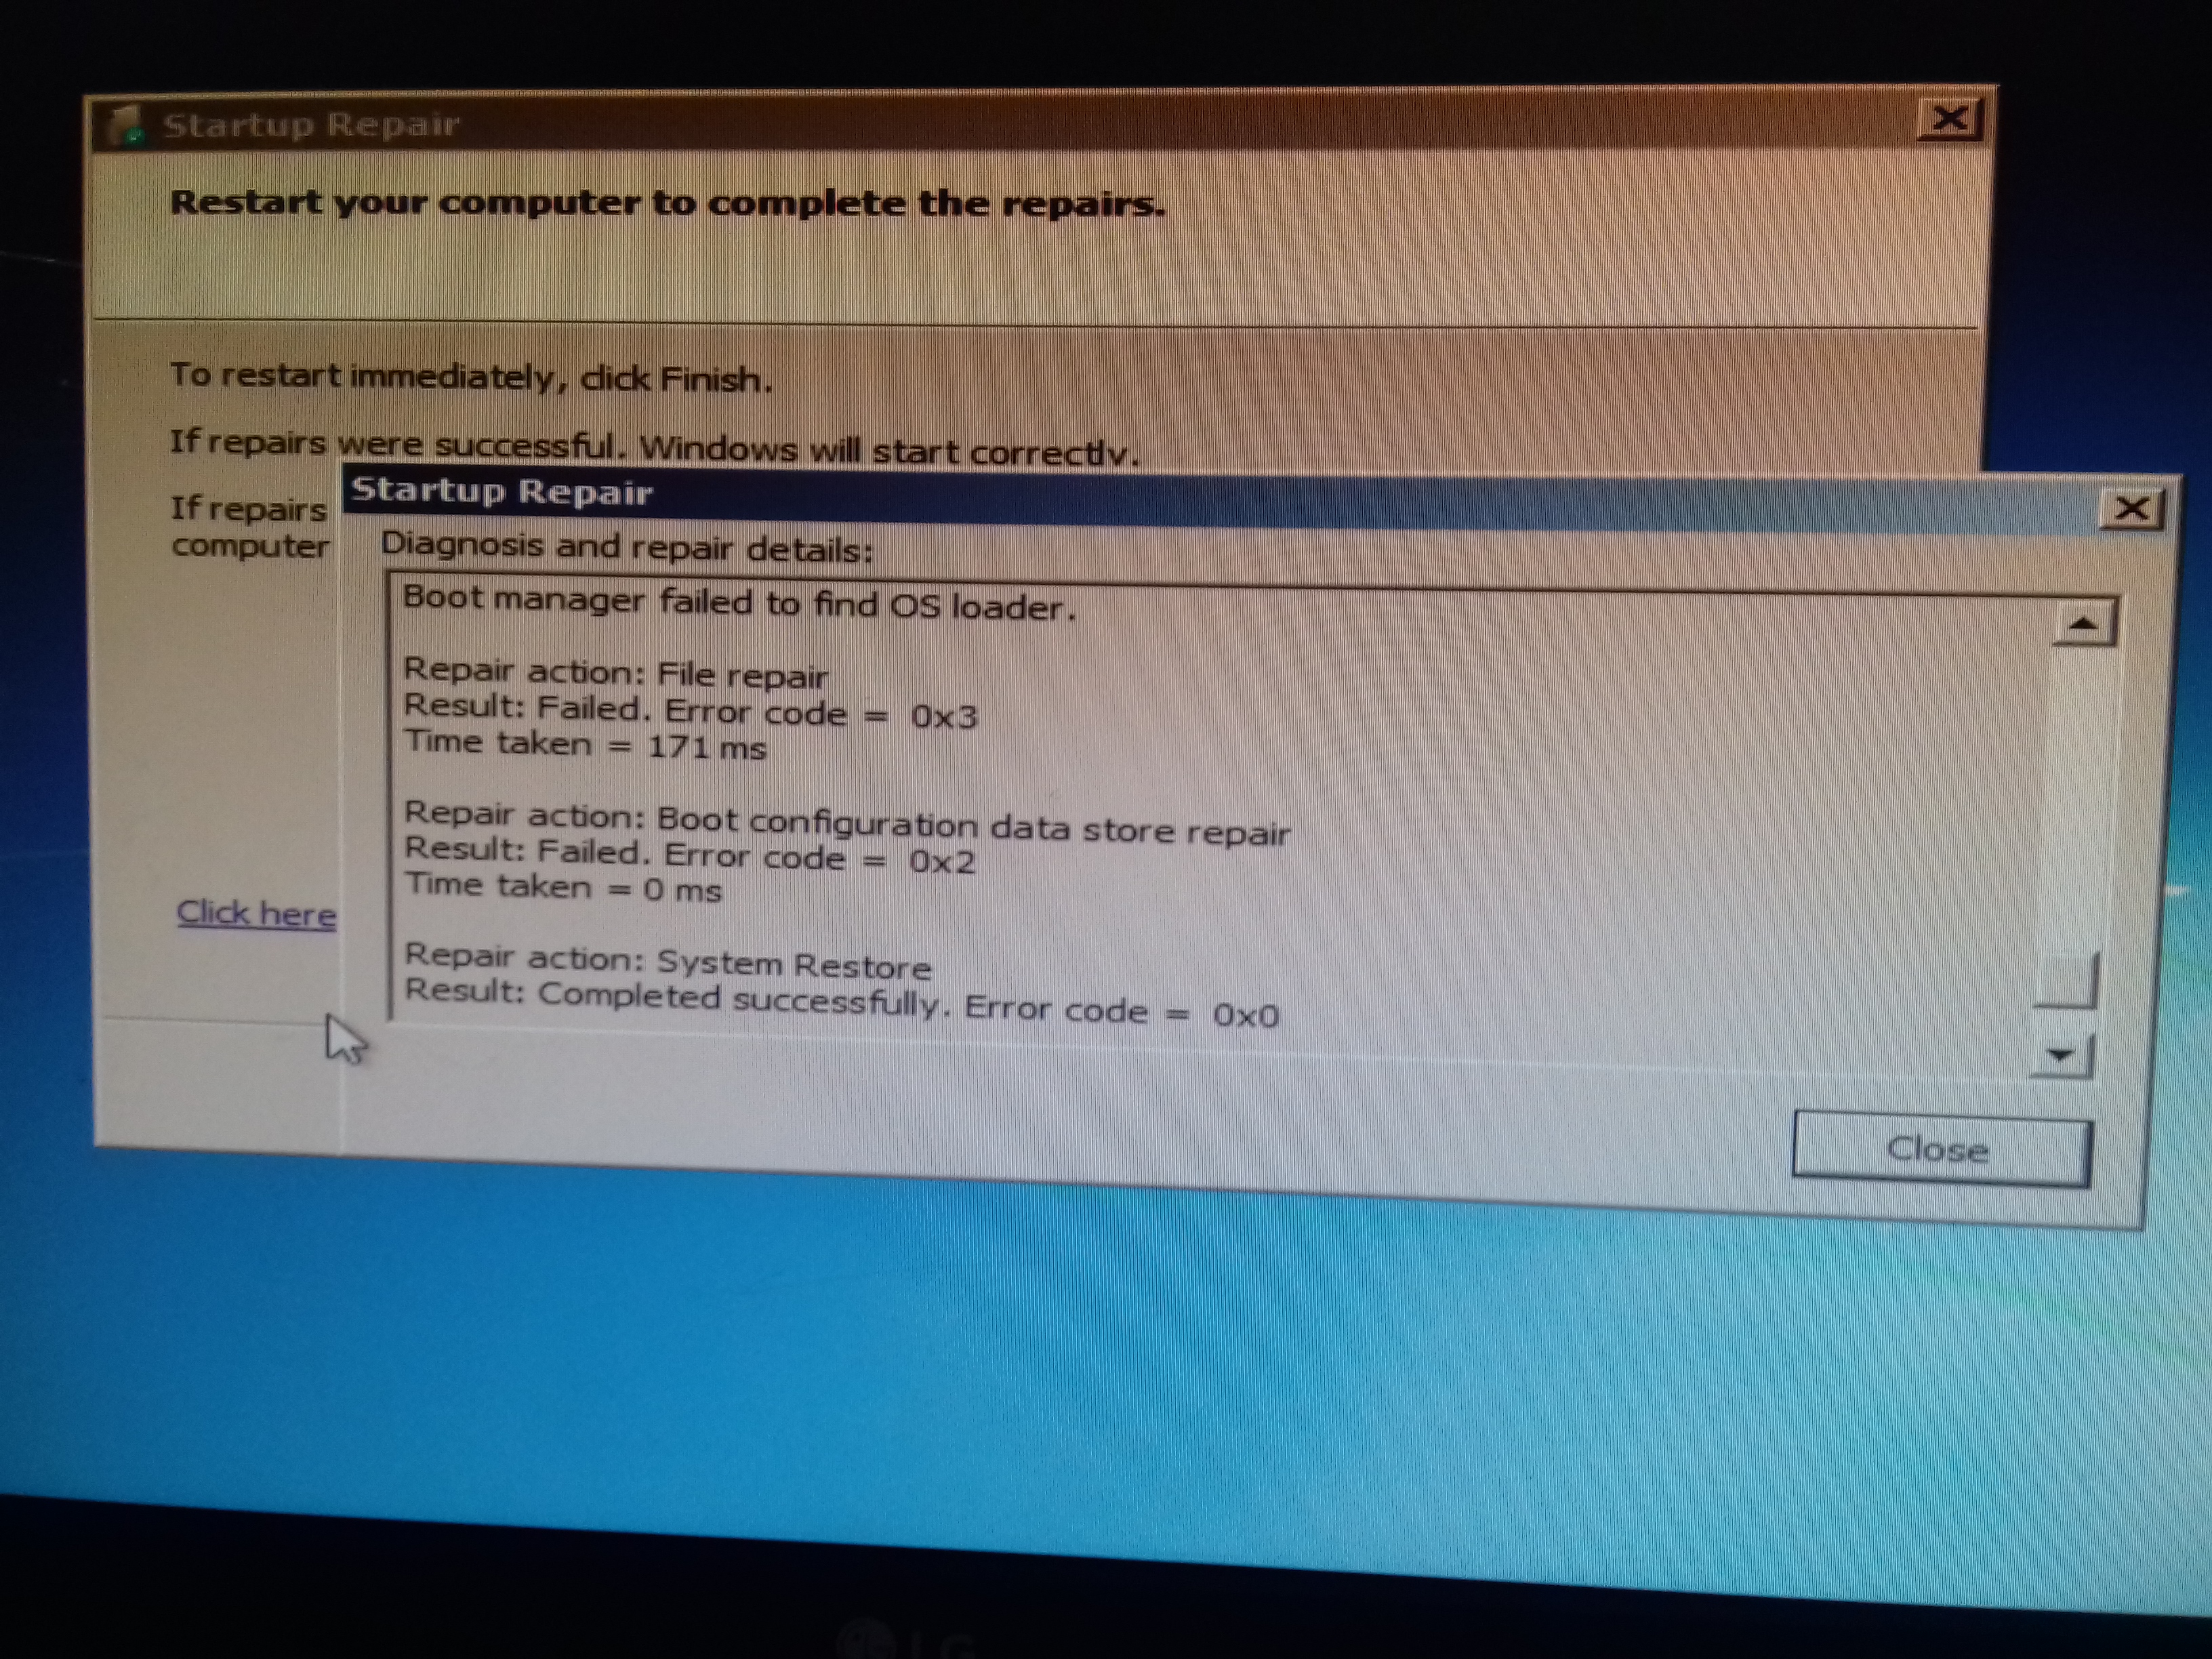 Boot manager failed to find OS loader   WINDOWS 7